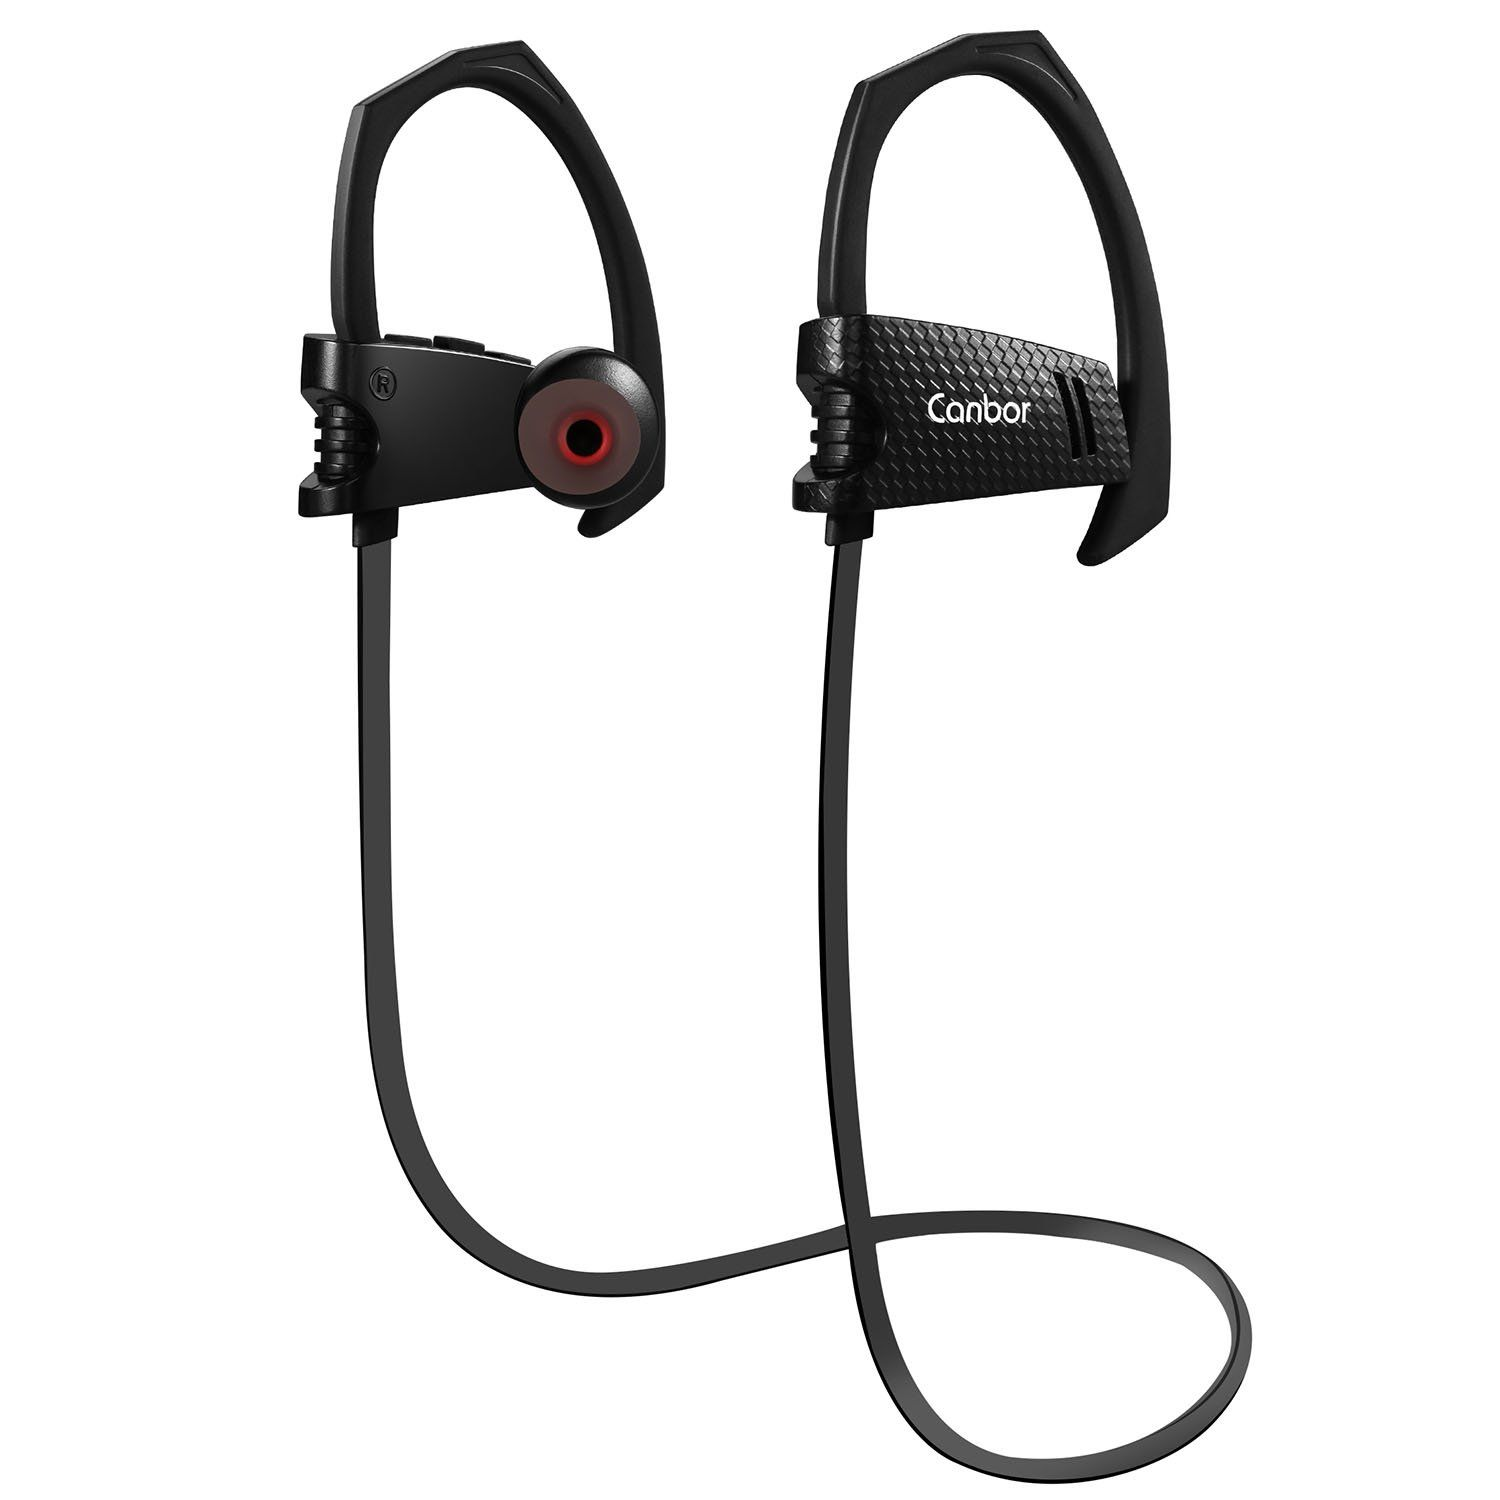 Canbor Bluetooth Headphones 4.1 Wireless Earbuds with Mic